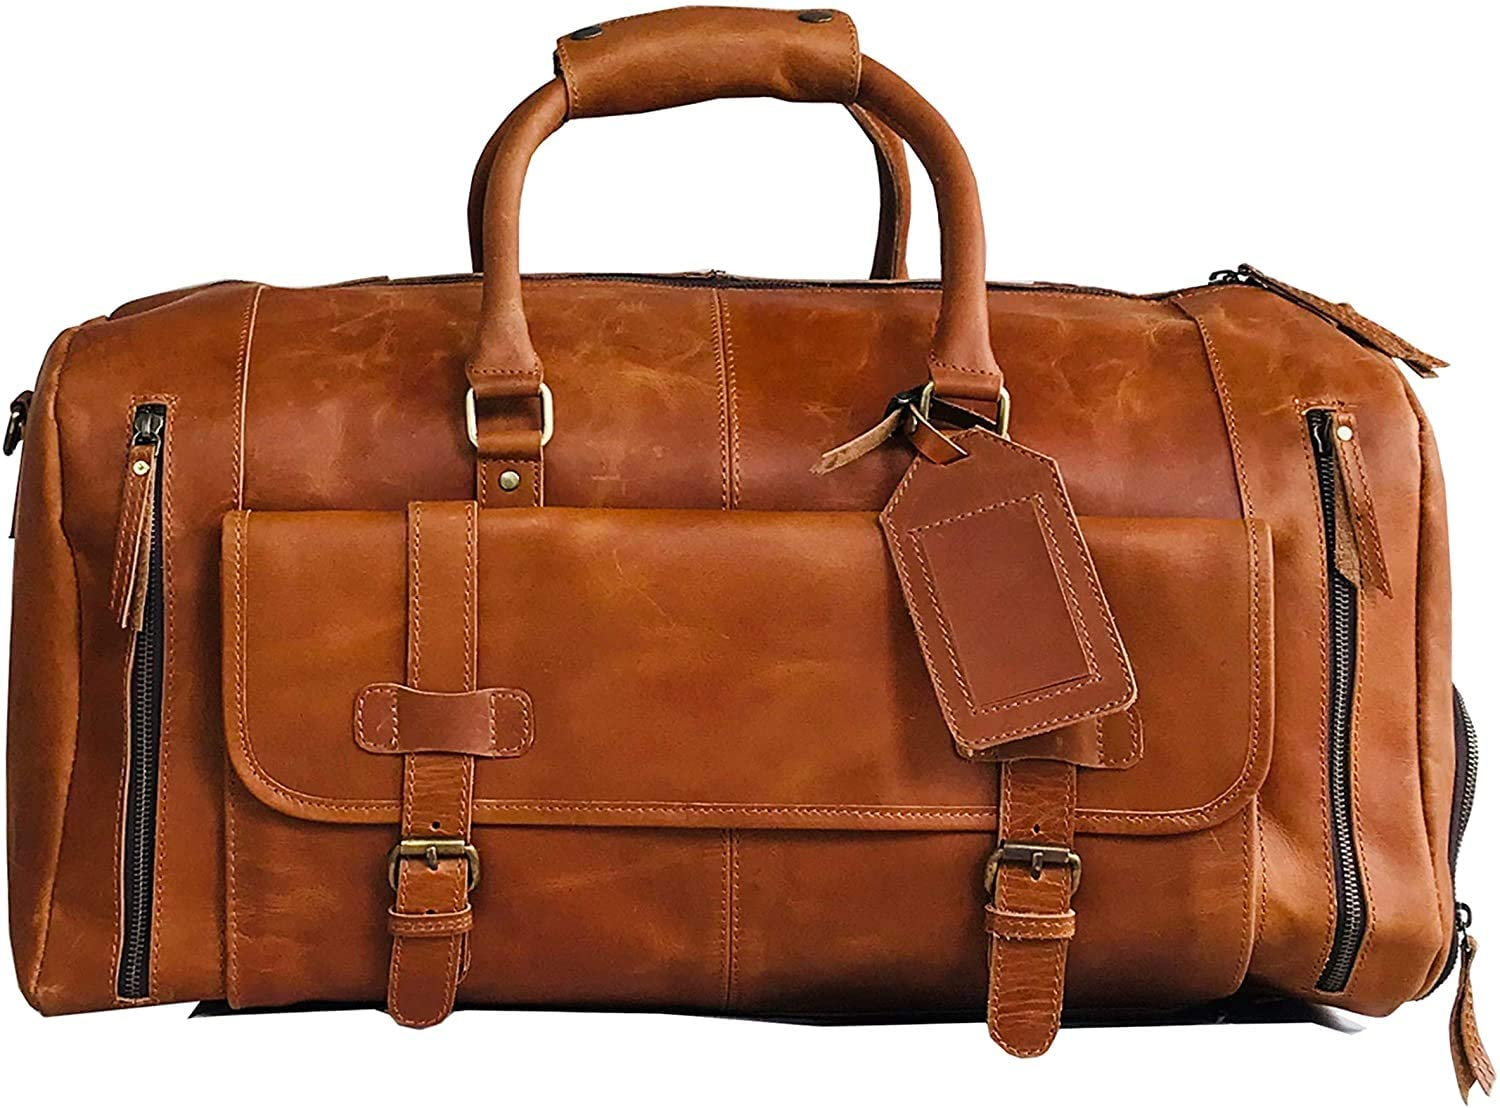 father-of-the-bride-gifts-leather-weekender-bag